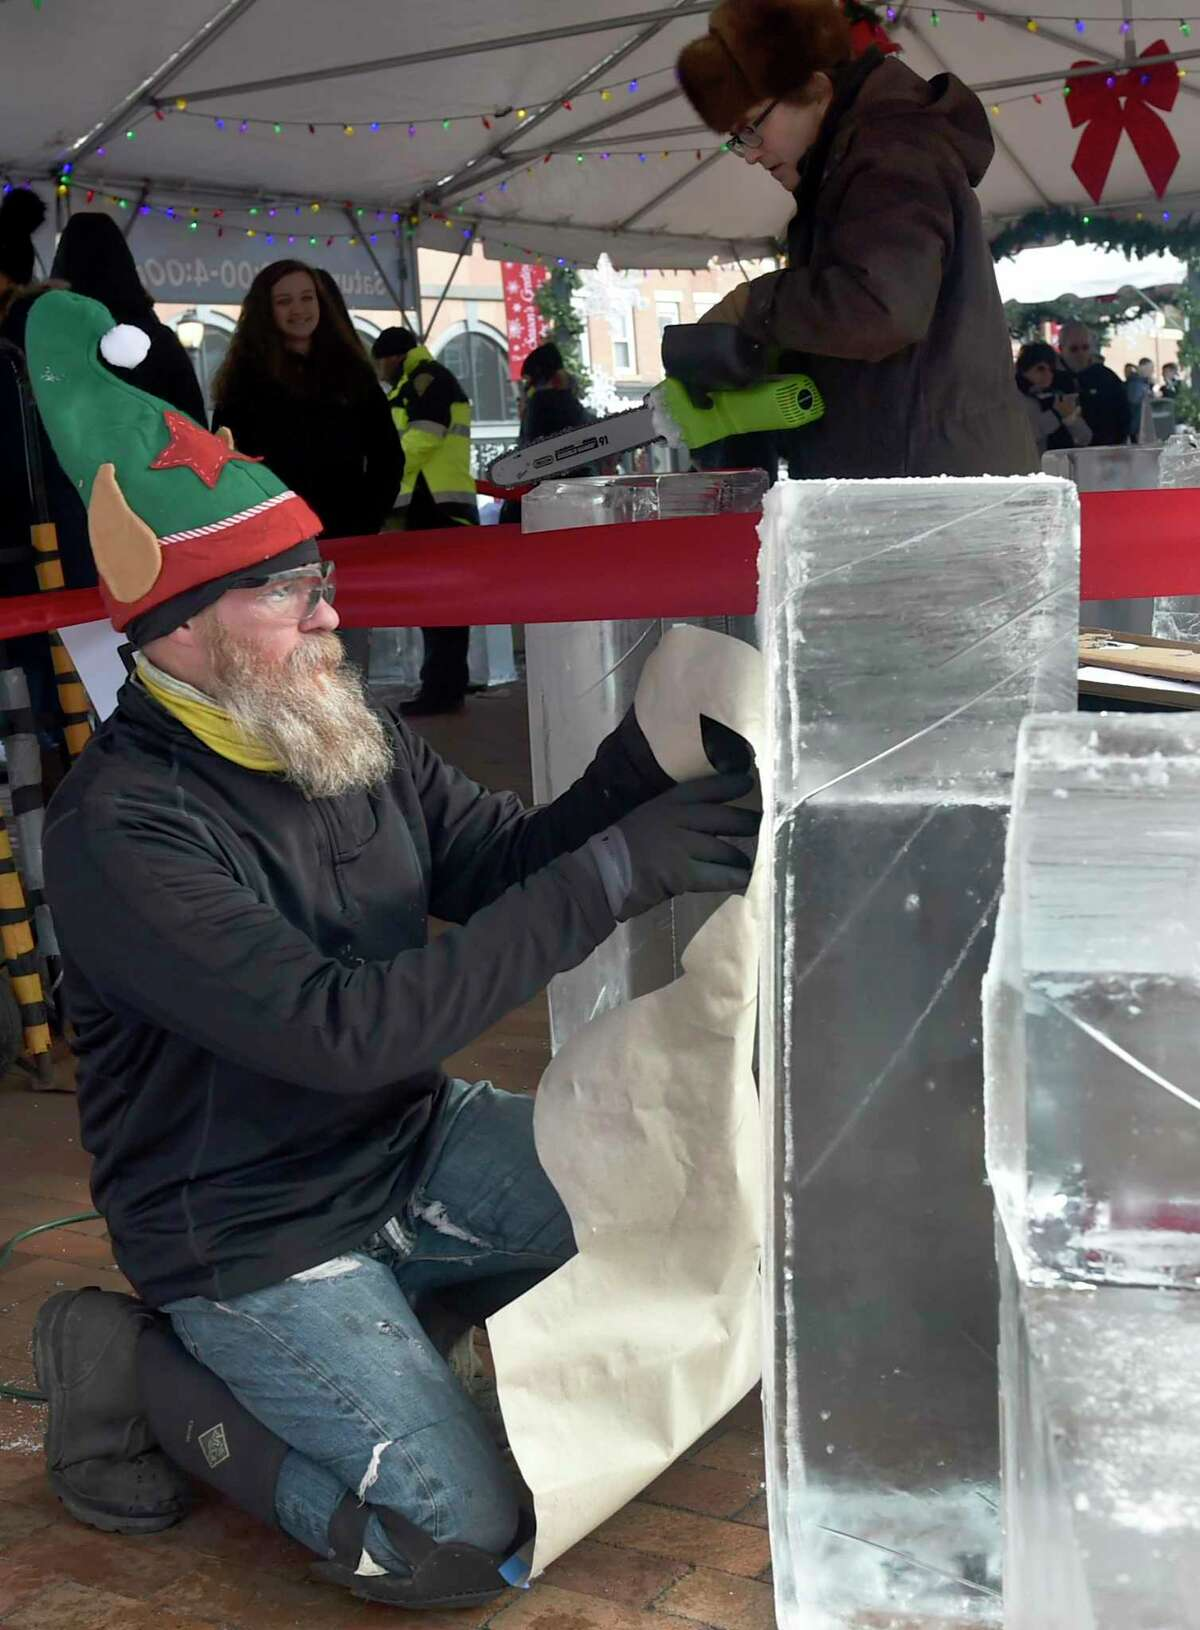 Part-time professional ice carver Joseph Bywater of Highland, N.Y. begins his ice carving design as he competes in The Shops at Yale sponsored Ice Carving competition Dec. 8, 2018 on the Broadway Island on Broadway in New Haven.